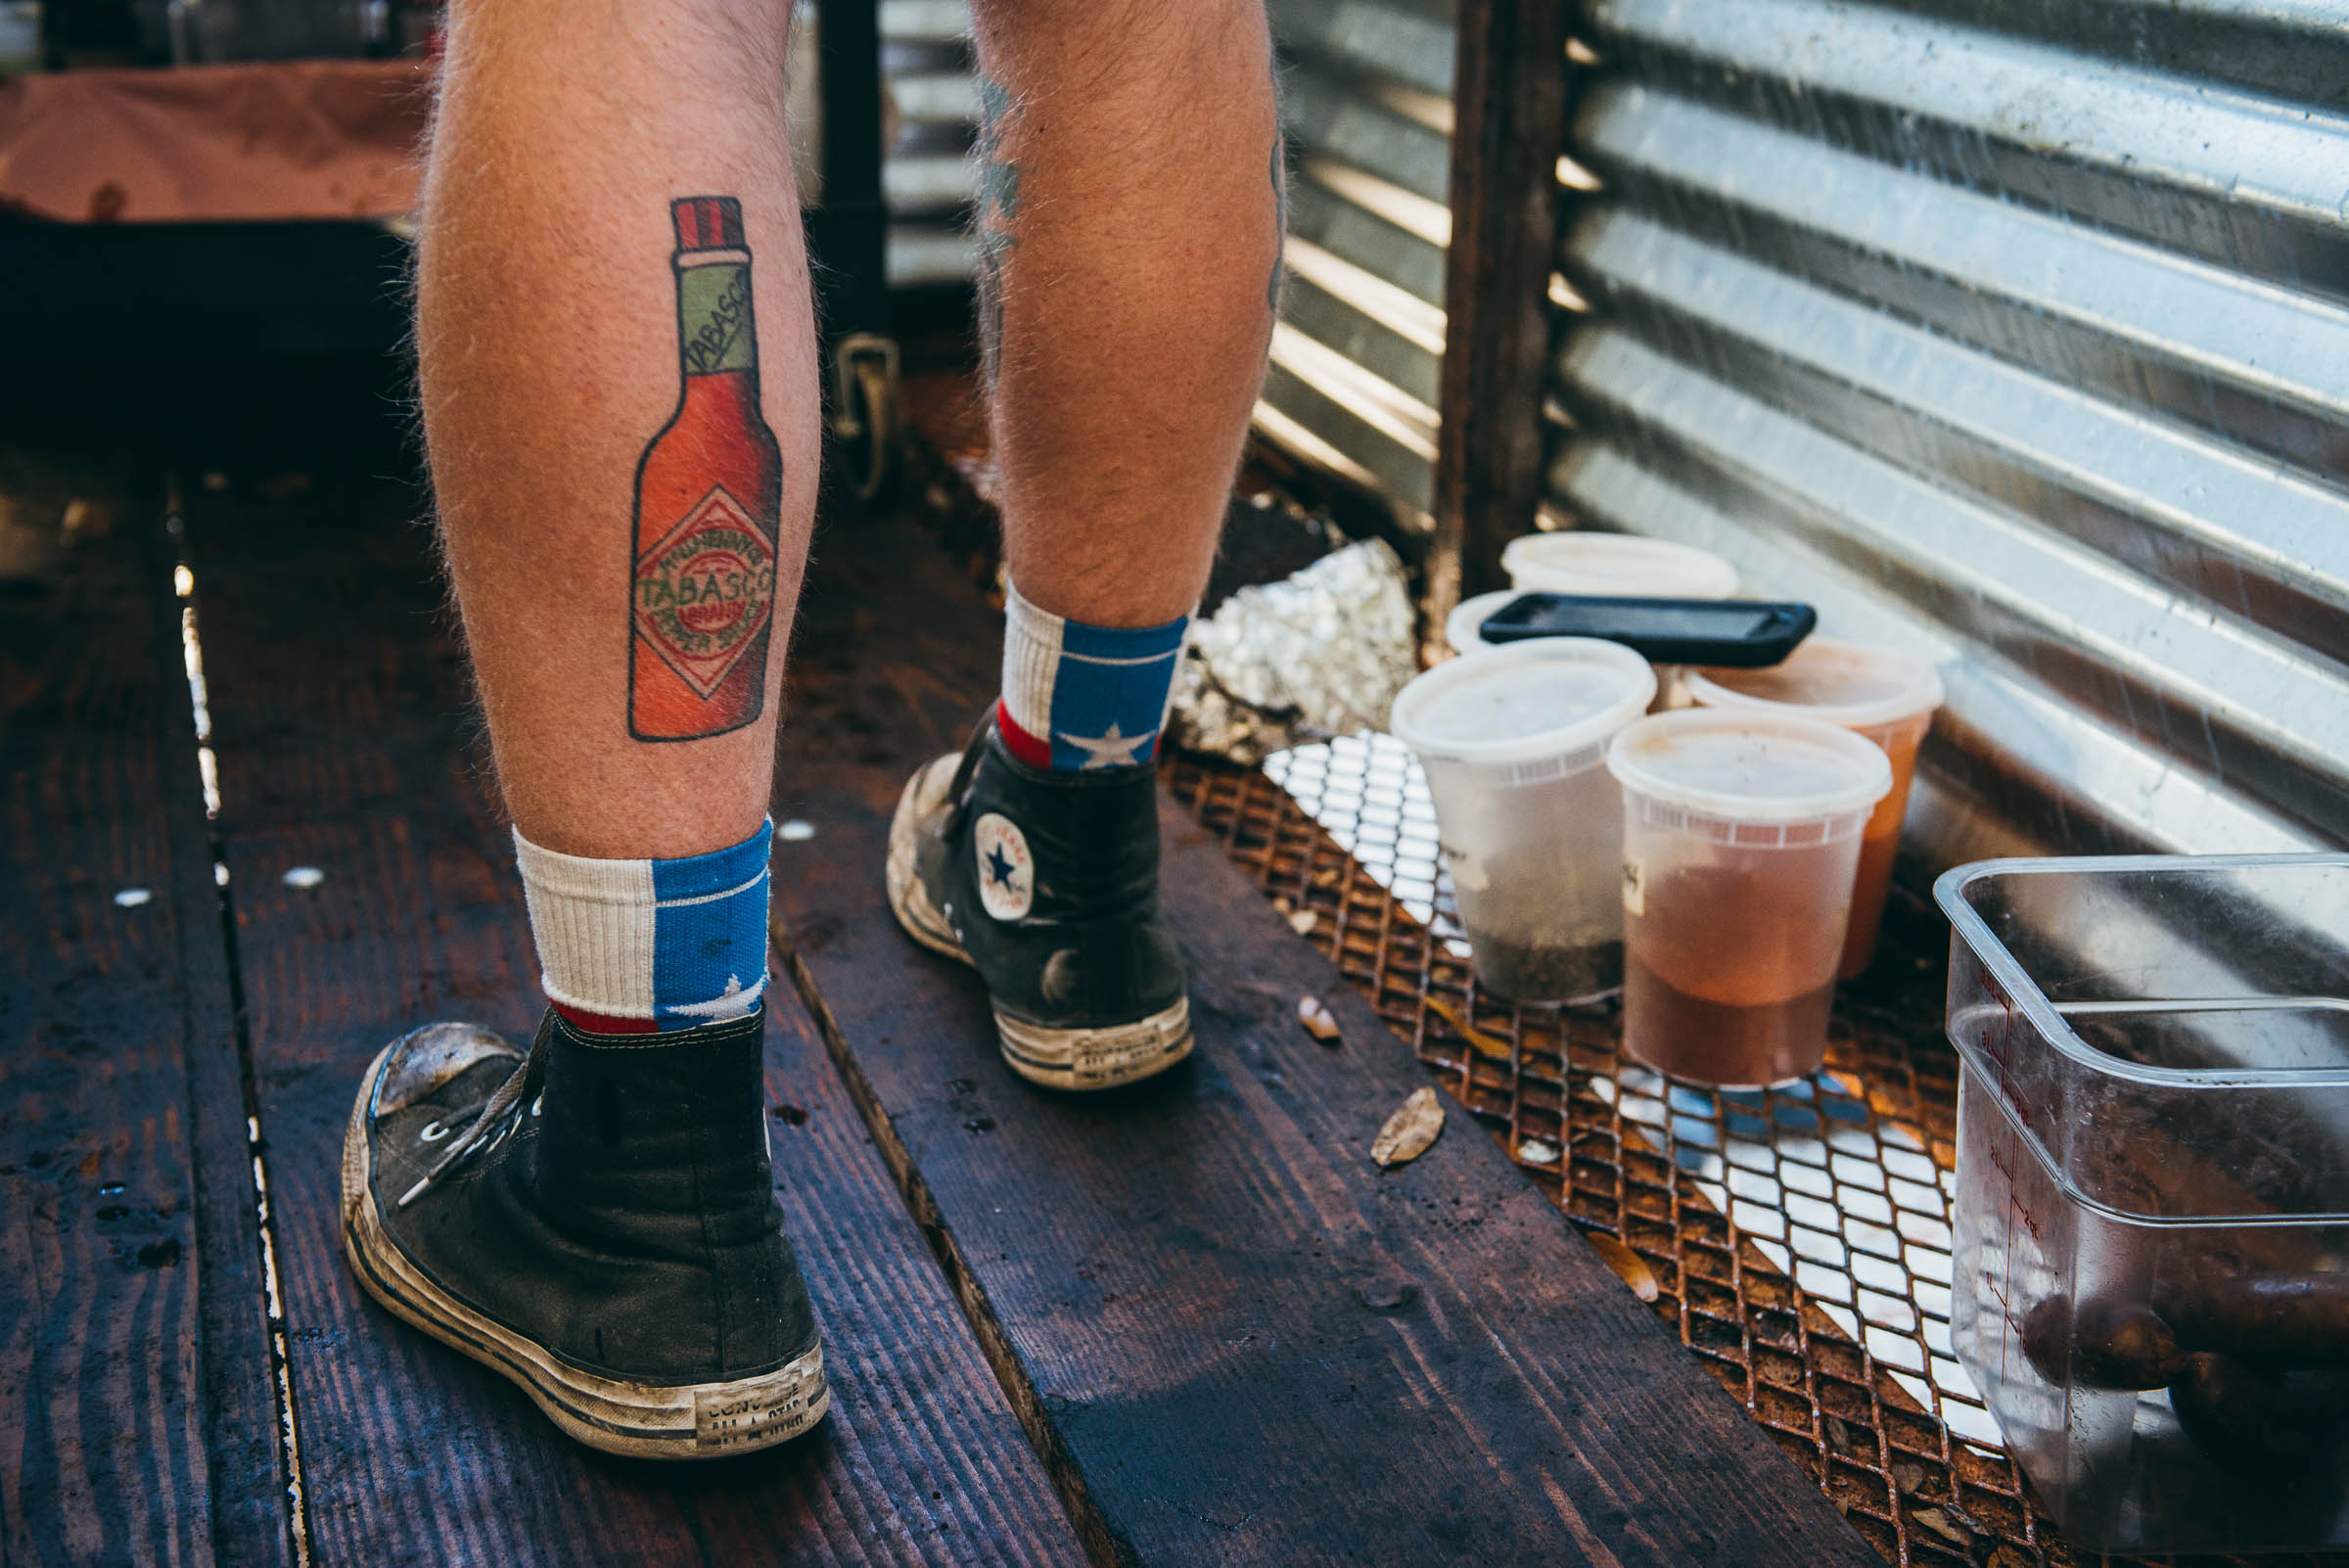 Tattoo of a Tabasco bottle on Texas Pit-master Phillip Helberg